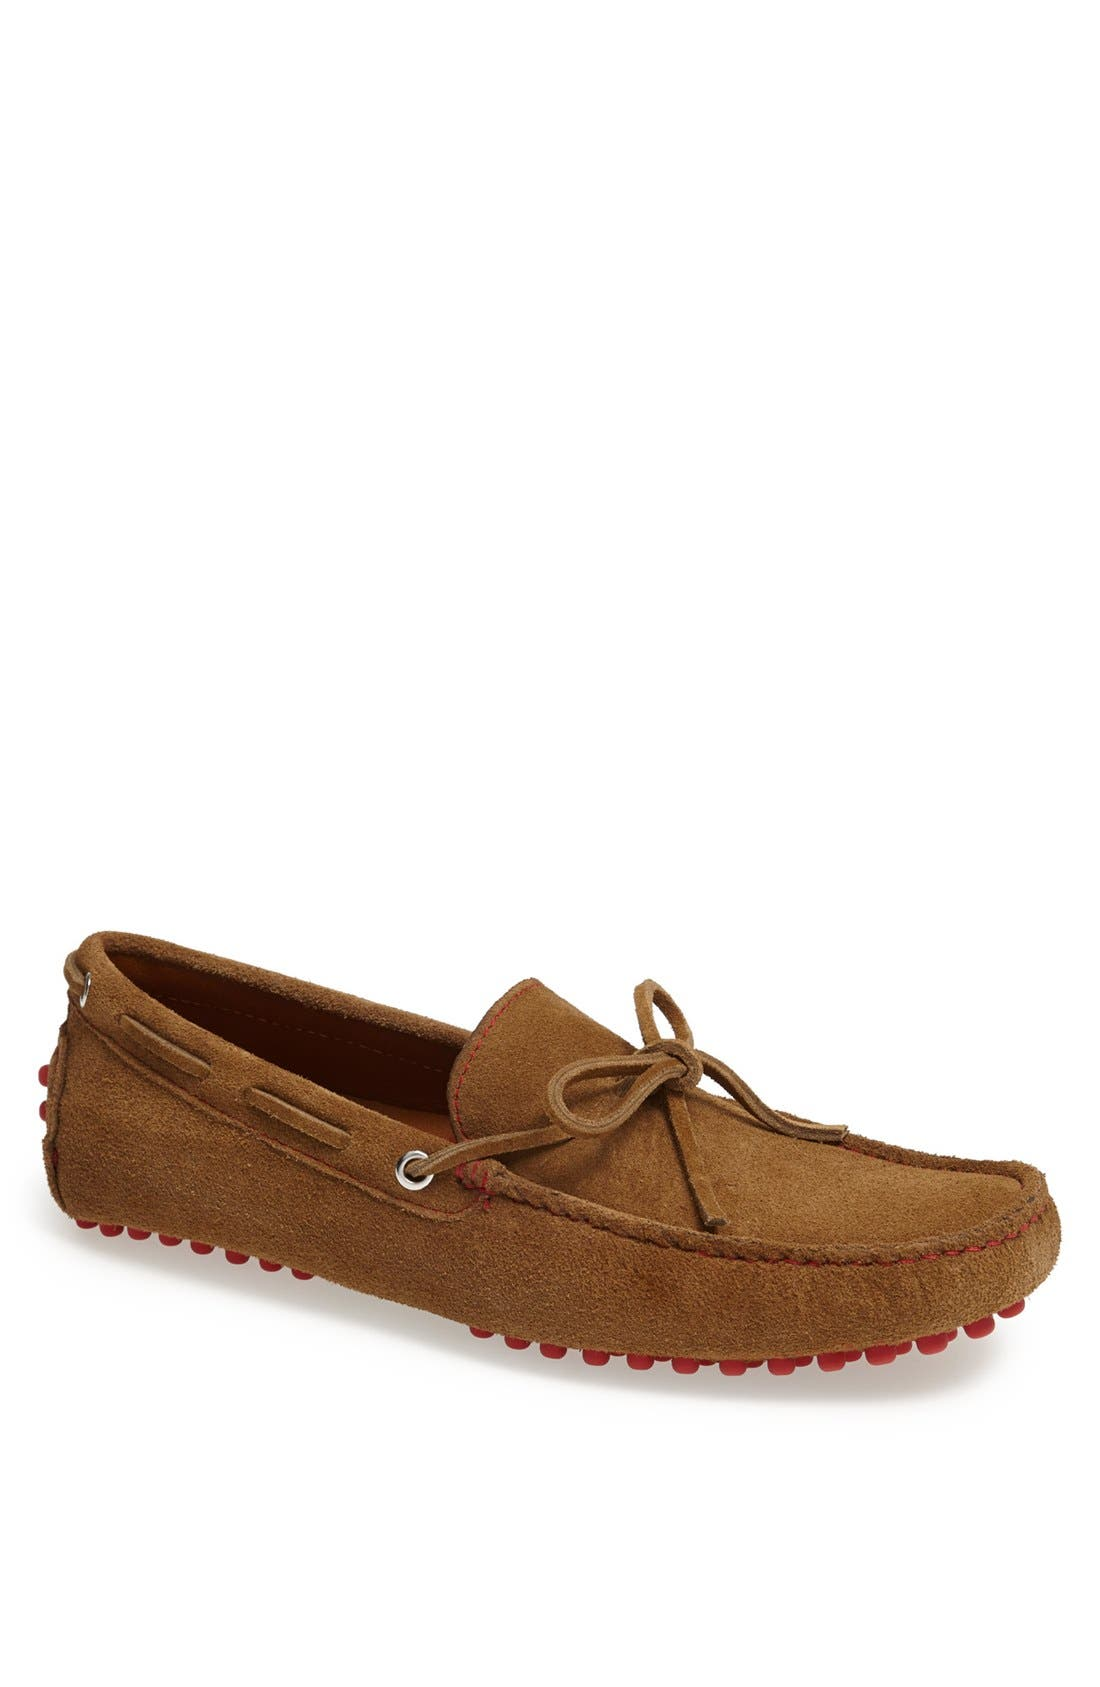 'Capri' Suede Driving Shoe,                             Main thumbnail 1, color,                             Tobacco